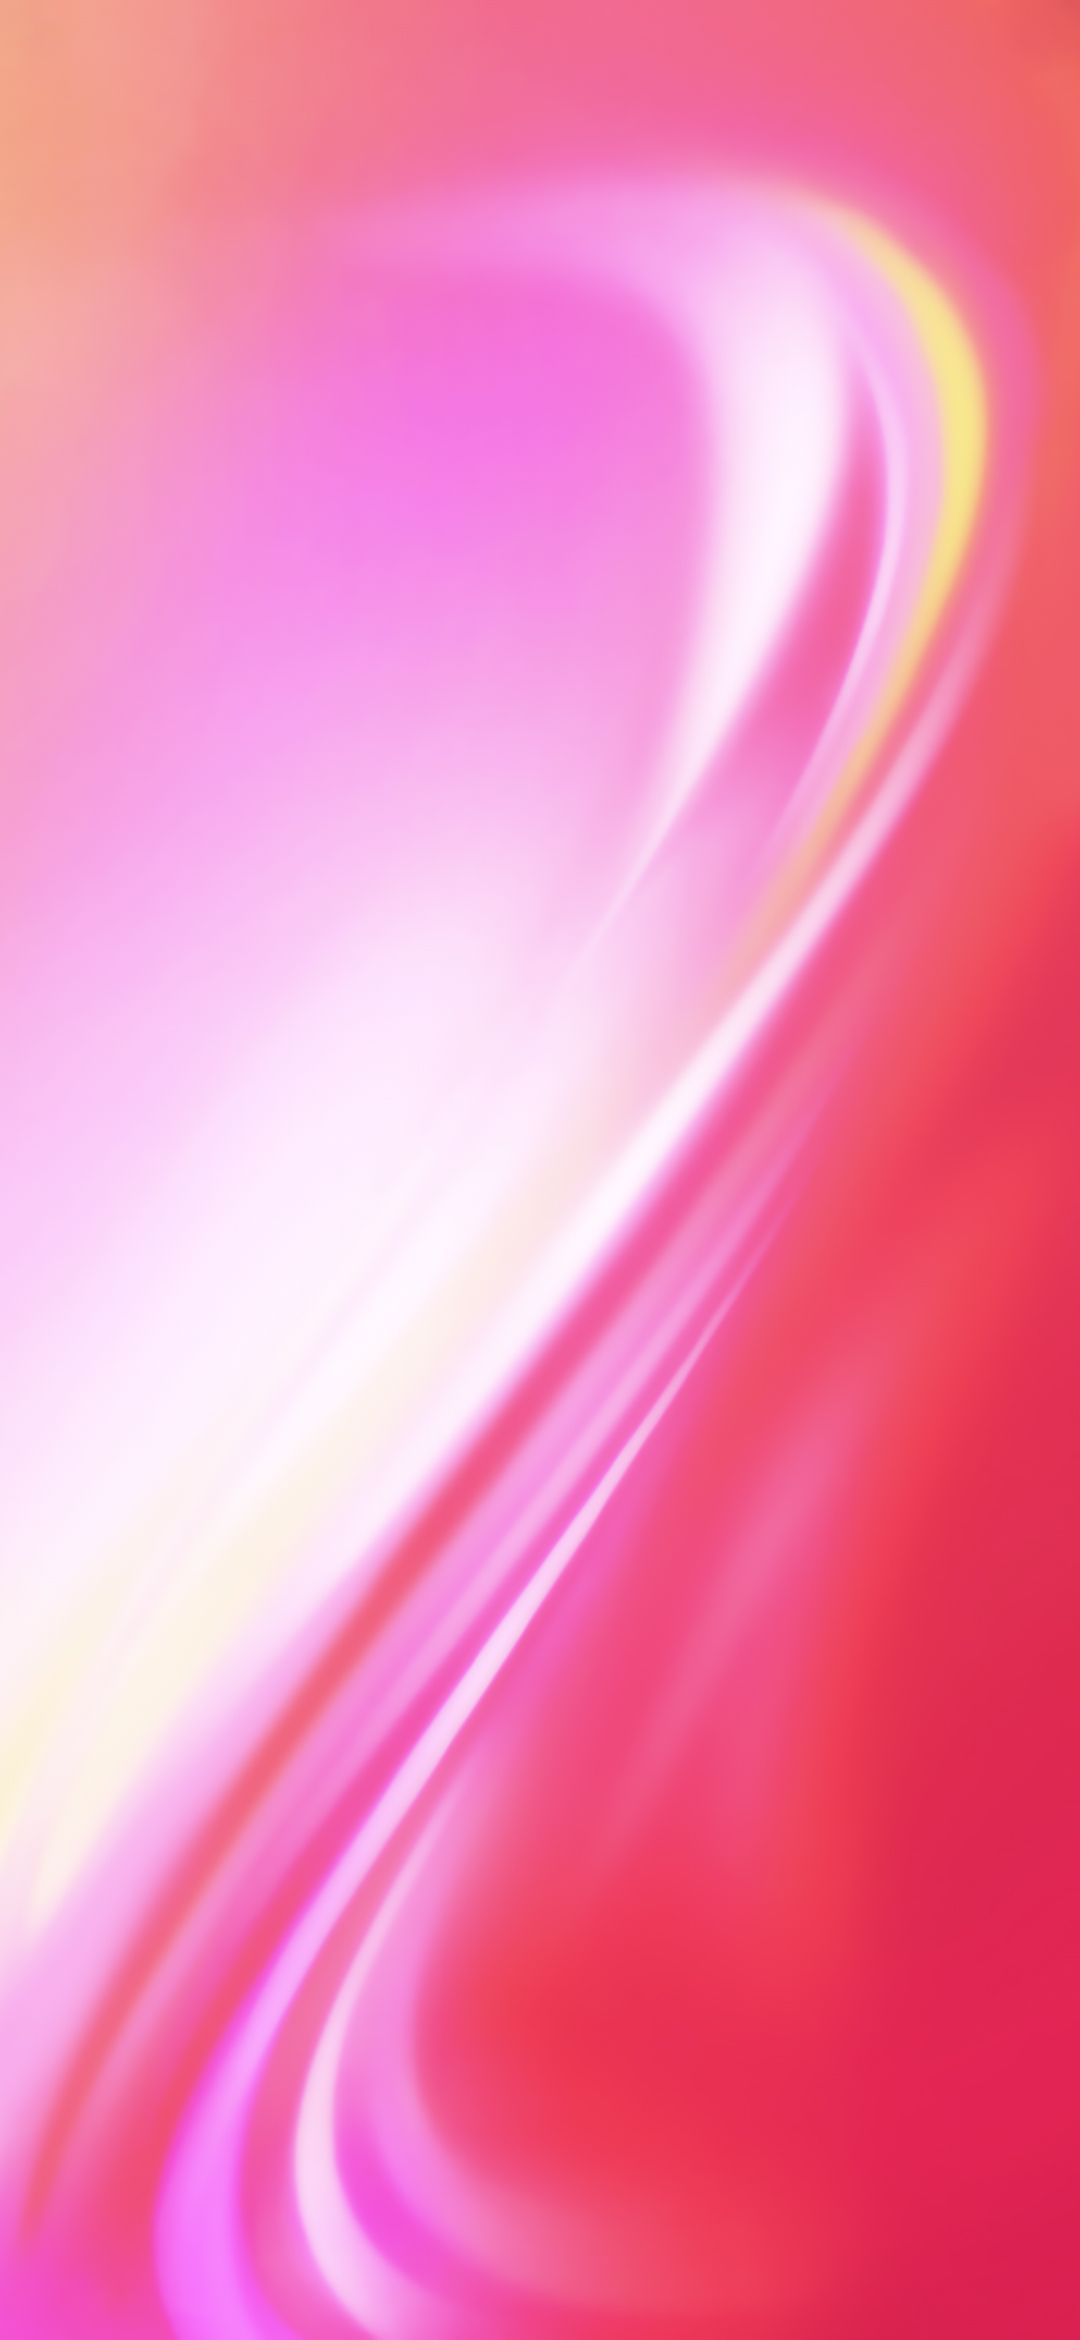 Vivo S1 Pro Wallpaper Ytechb Exclusive Abstract Iphone Wallpaper Stock Wallpapers Iphone Wallpaper Video